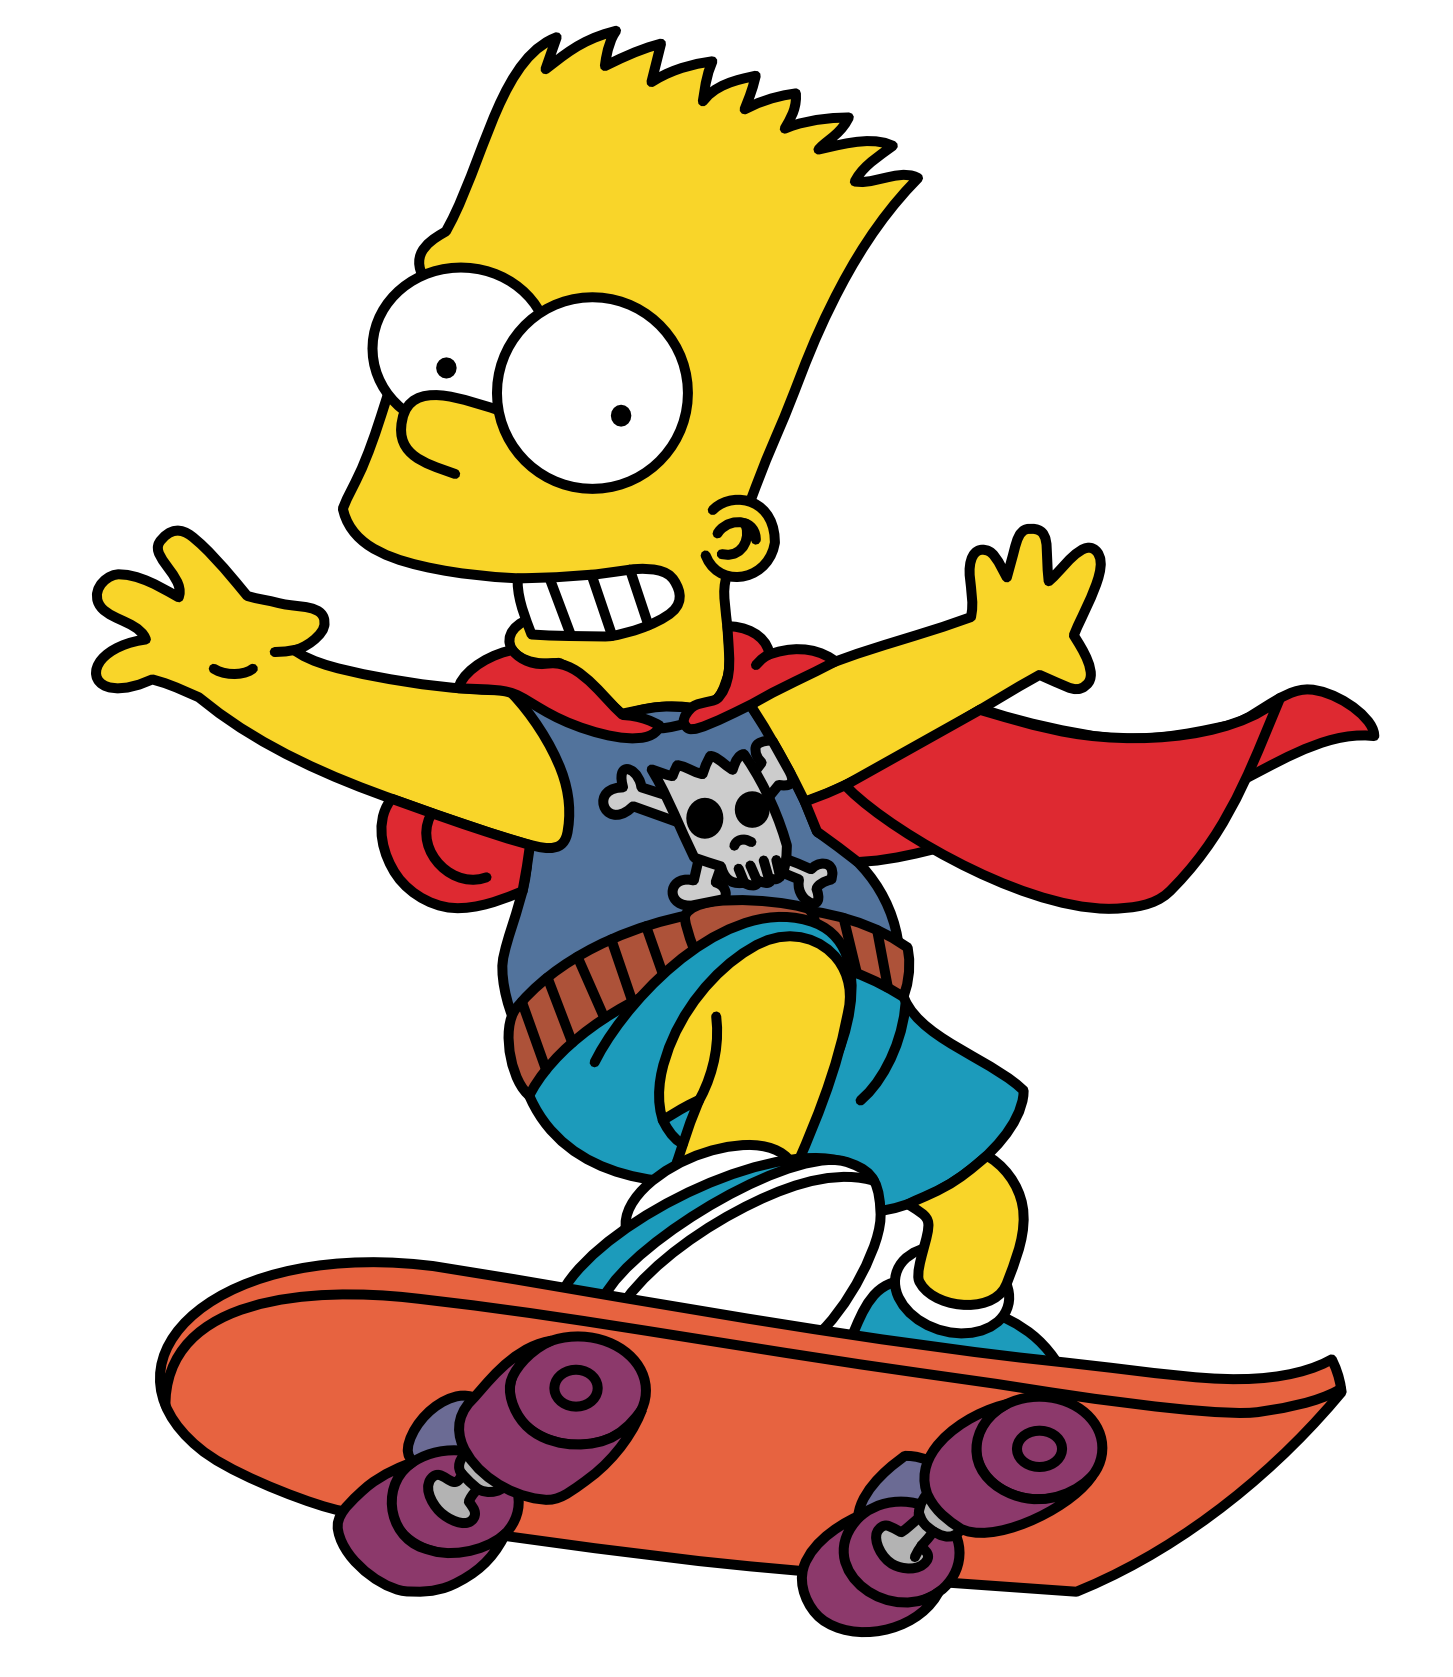 Free Images Bart Simpson Download image #39256